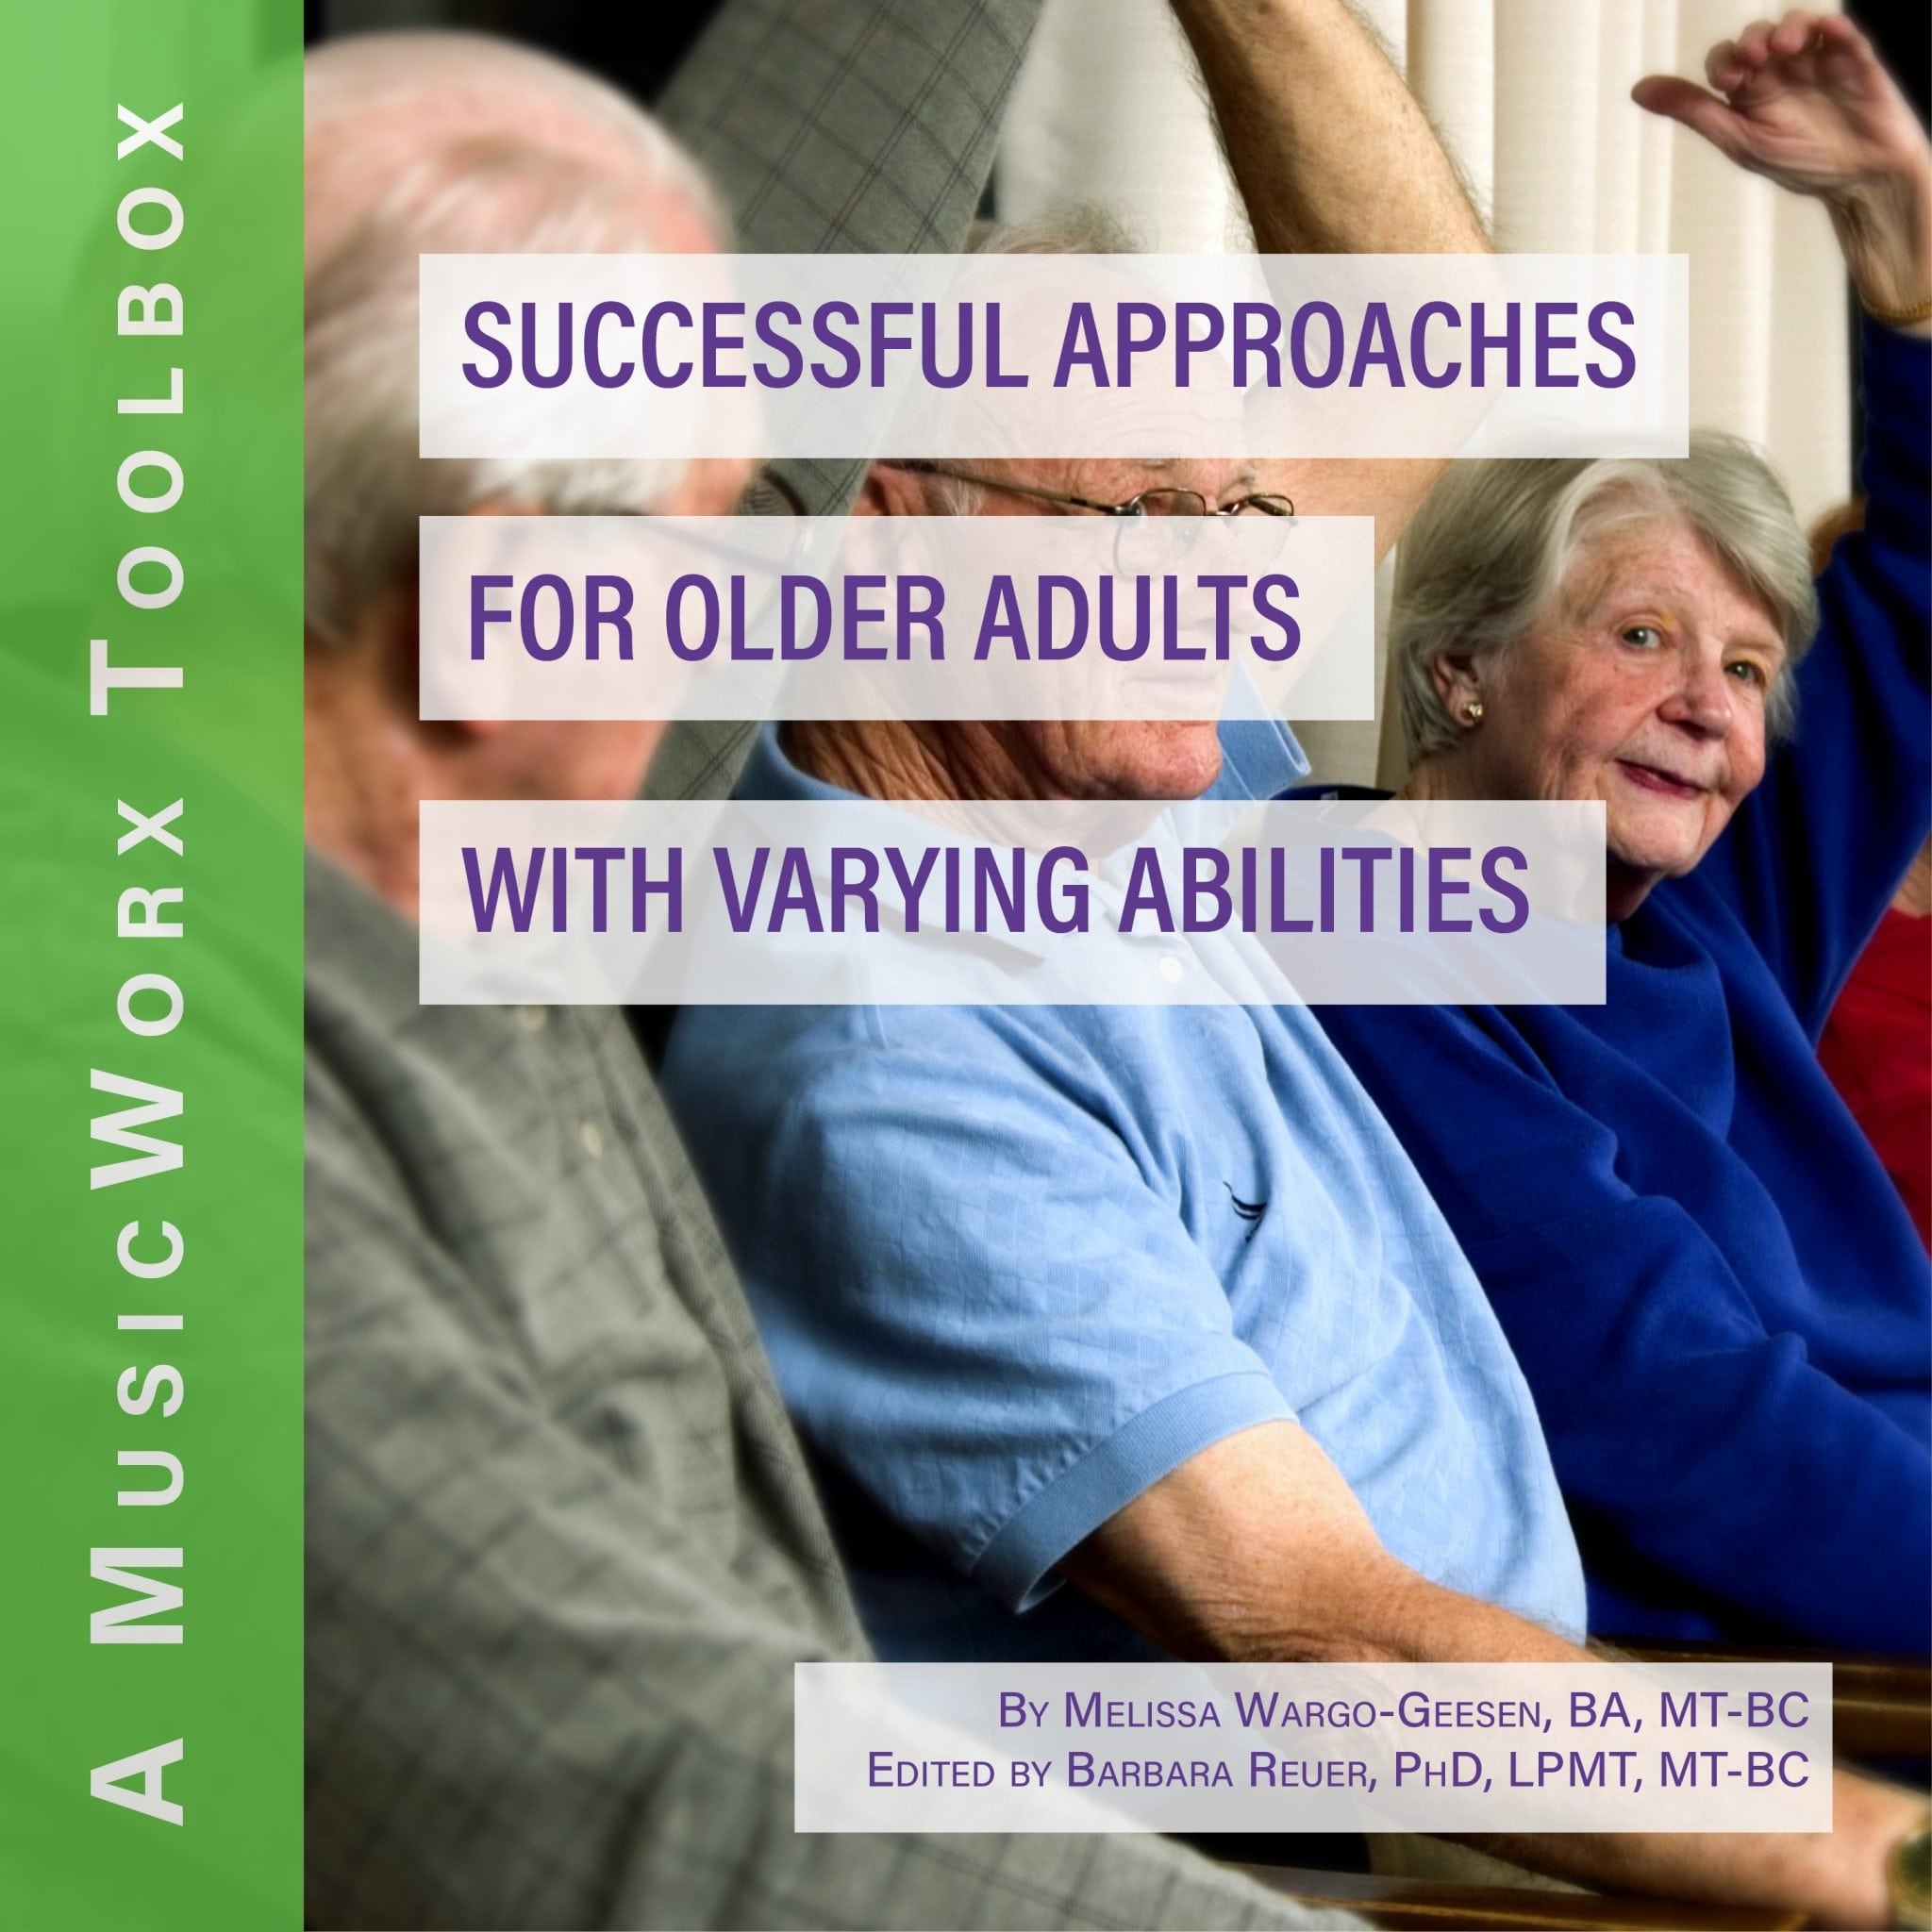 Successful Approaches for Older Adults with Varying Abilities